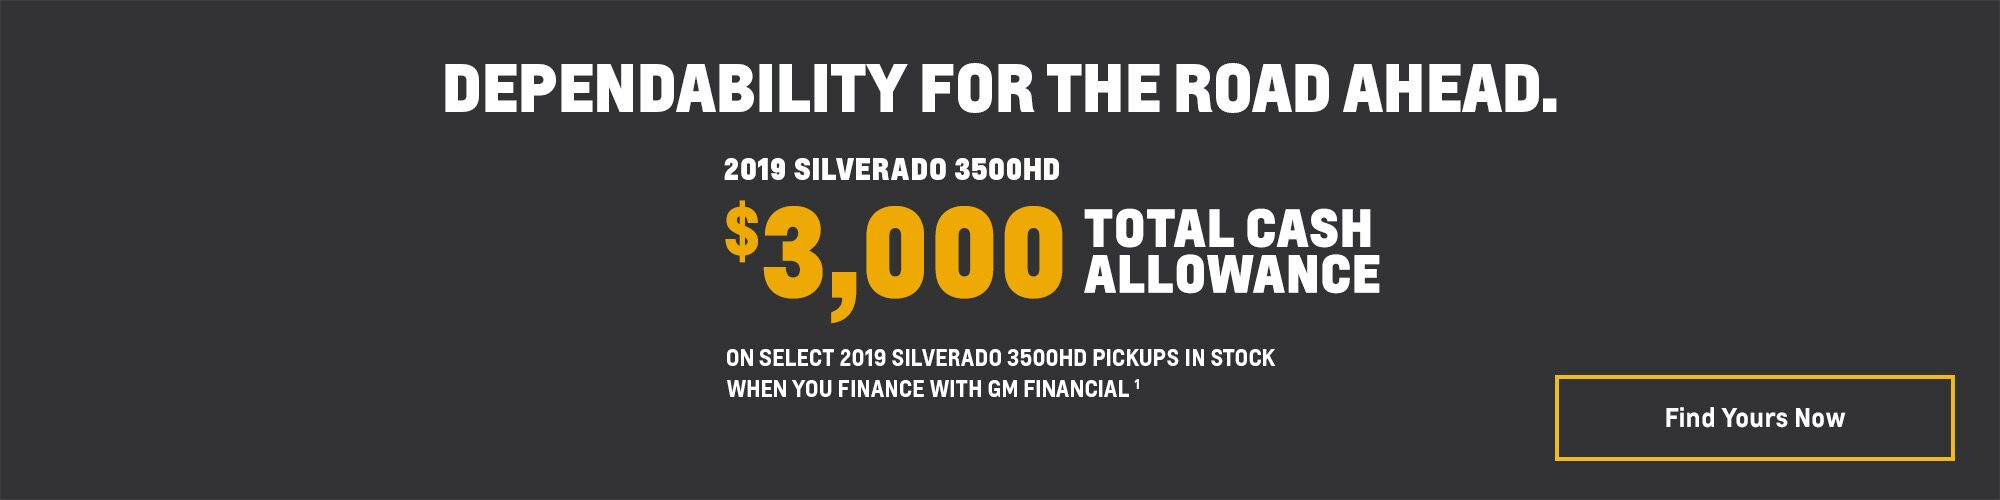 2019 Silverado 3500HD Pickup Truck Deals and Offers